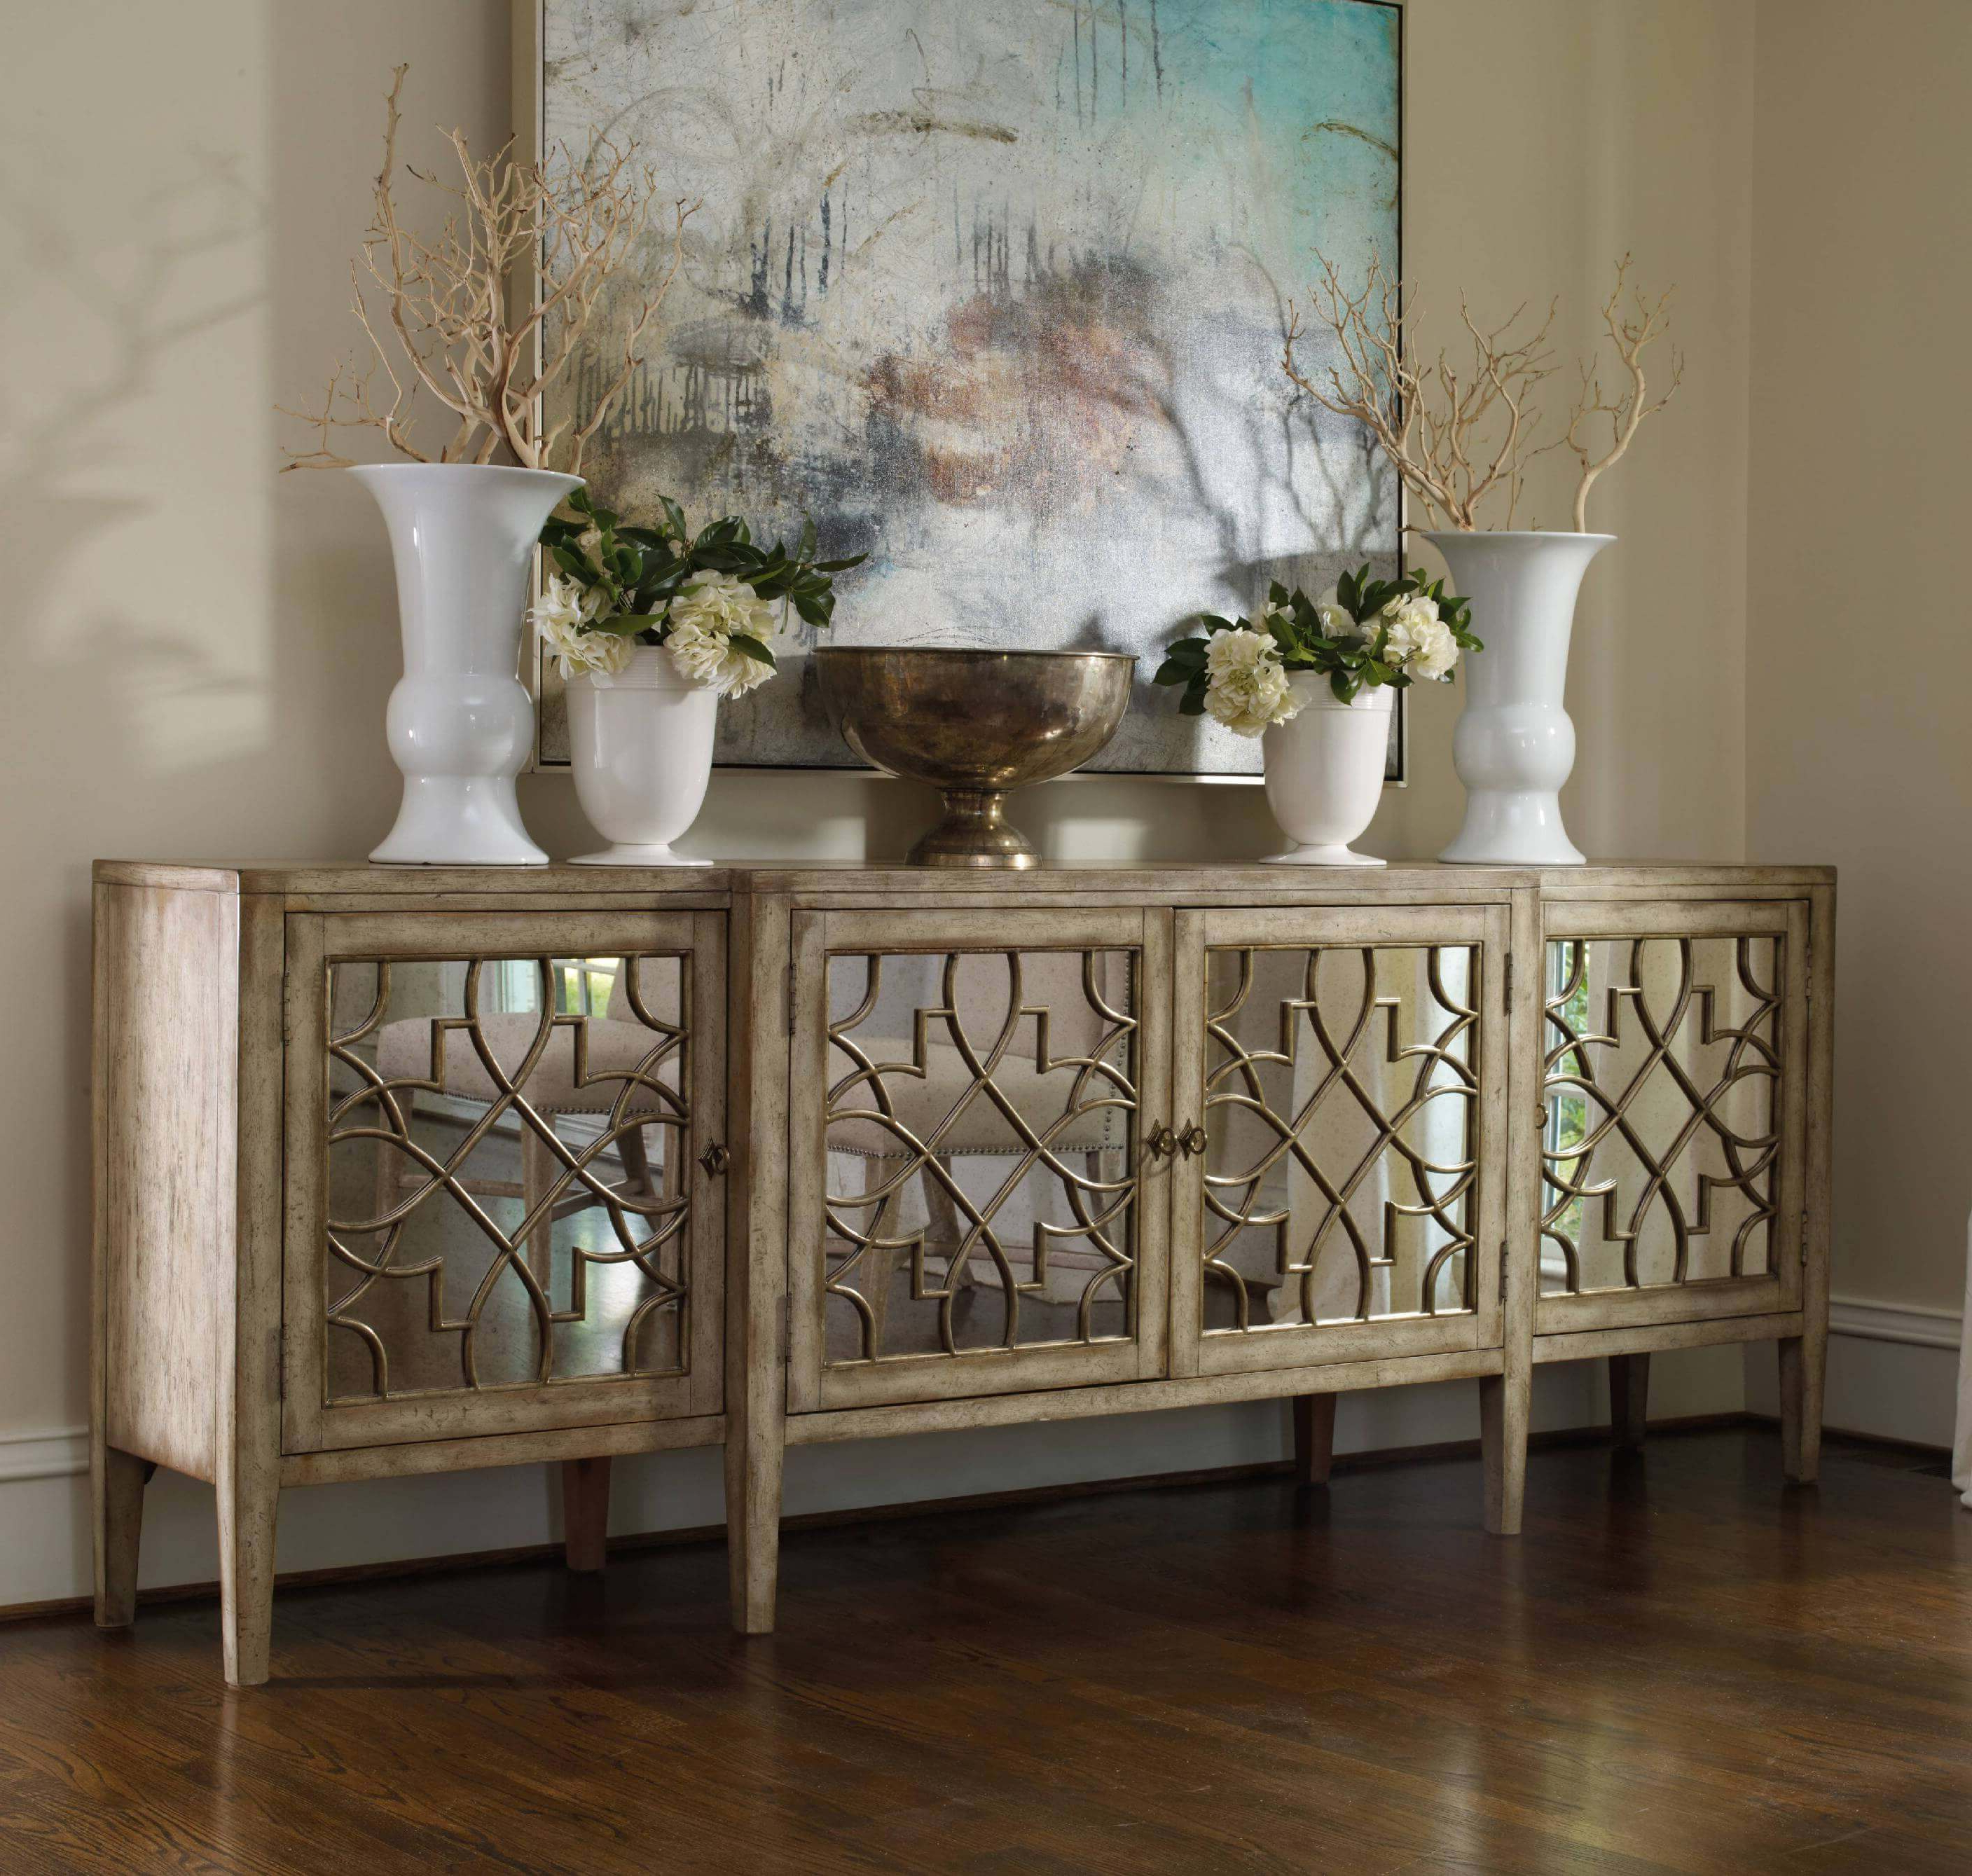 Natural Wood Mirrored Media Console Tables For Best And Newest 30 Best Rustic Glam Decoration Ideas And Designs For 2019 (Gallery 13 of 20)